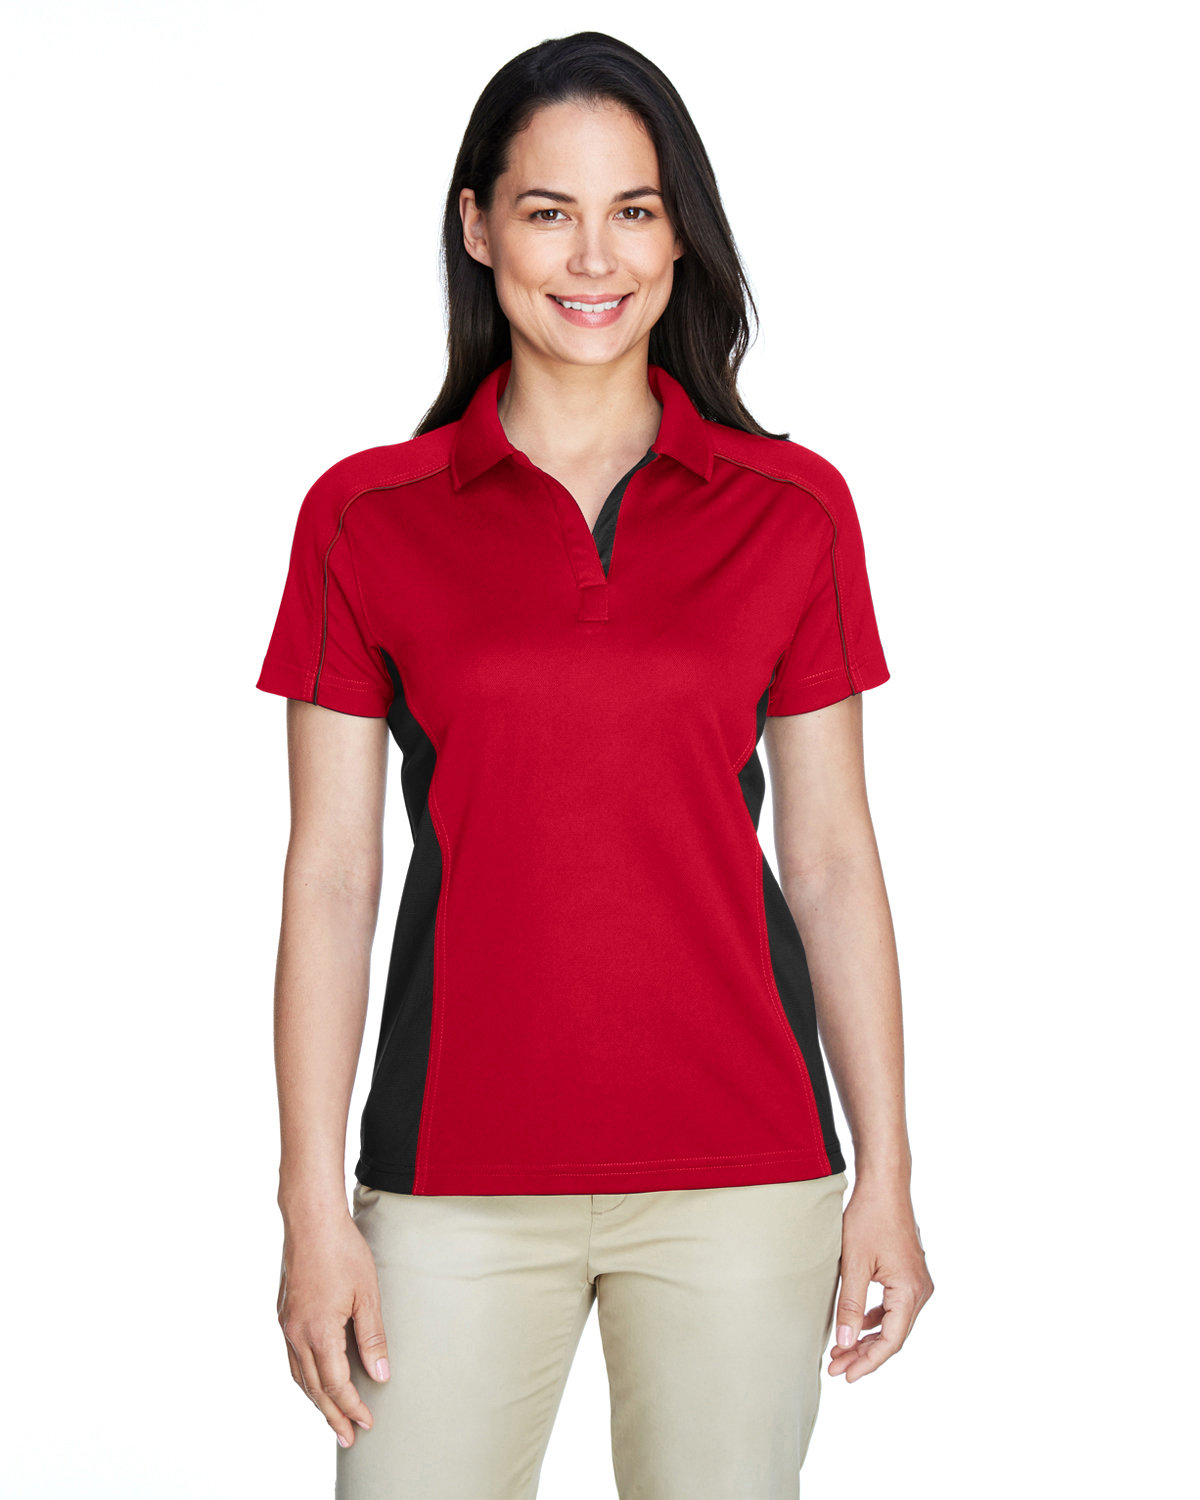 Extreme Ladies' Eperformance™ Fuse Snag Protection Plus Colorblock Polo CLASSIC RED/ BLK